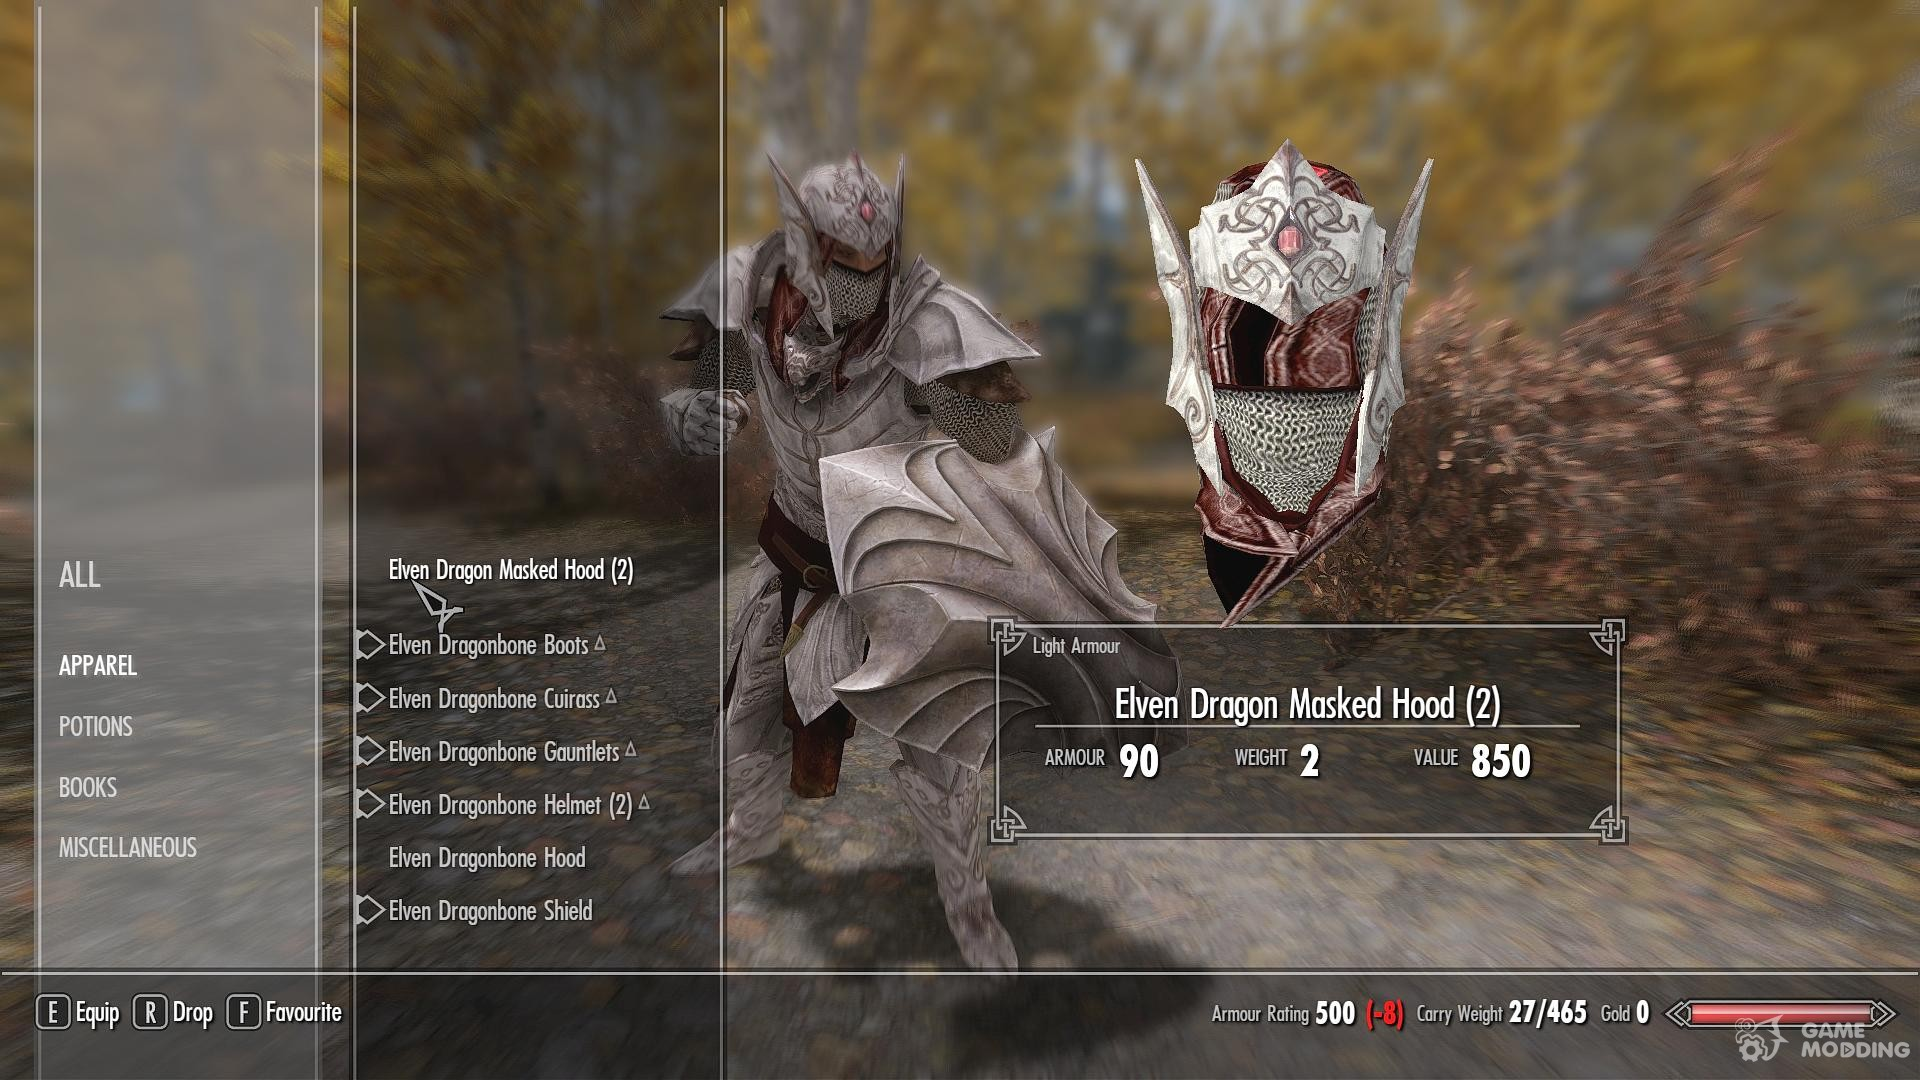 Elven Dragonbone Light Armor Set for TES V Skyrim rear-left view & Elven Dragonbone Light Armor Set for TES V Skyrim